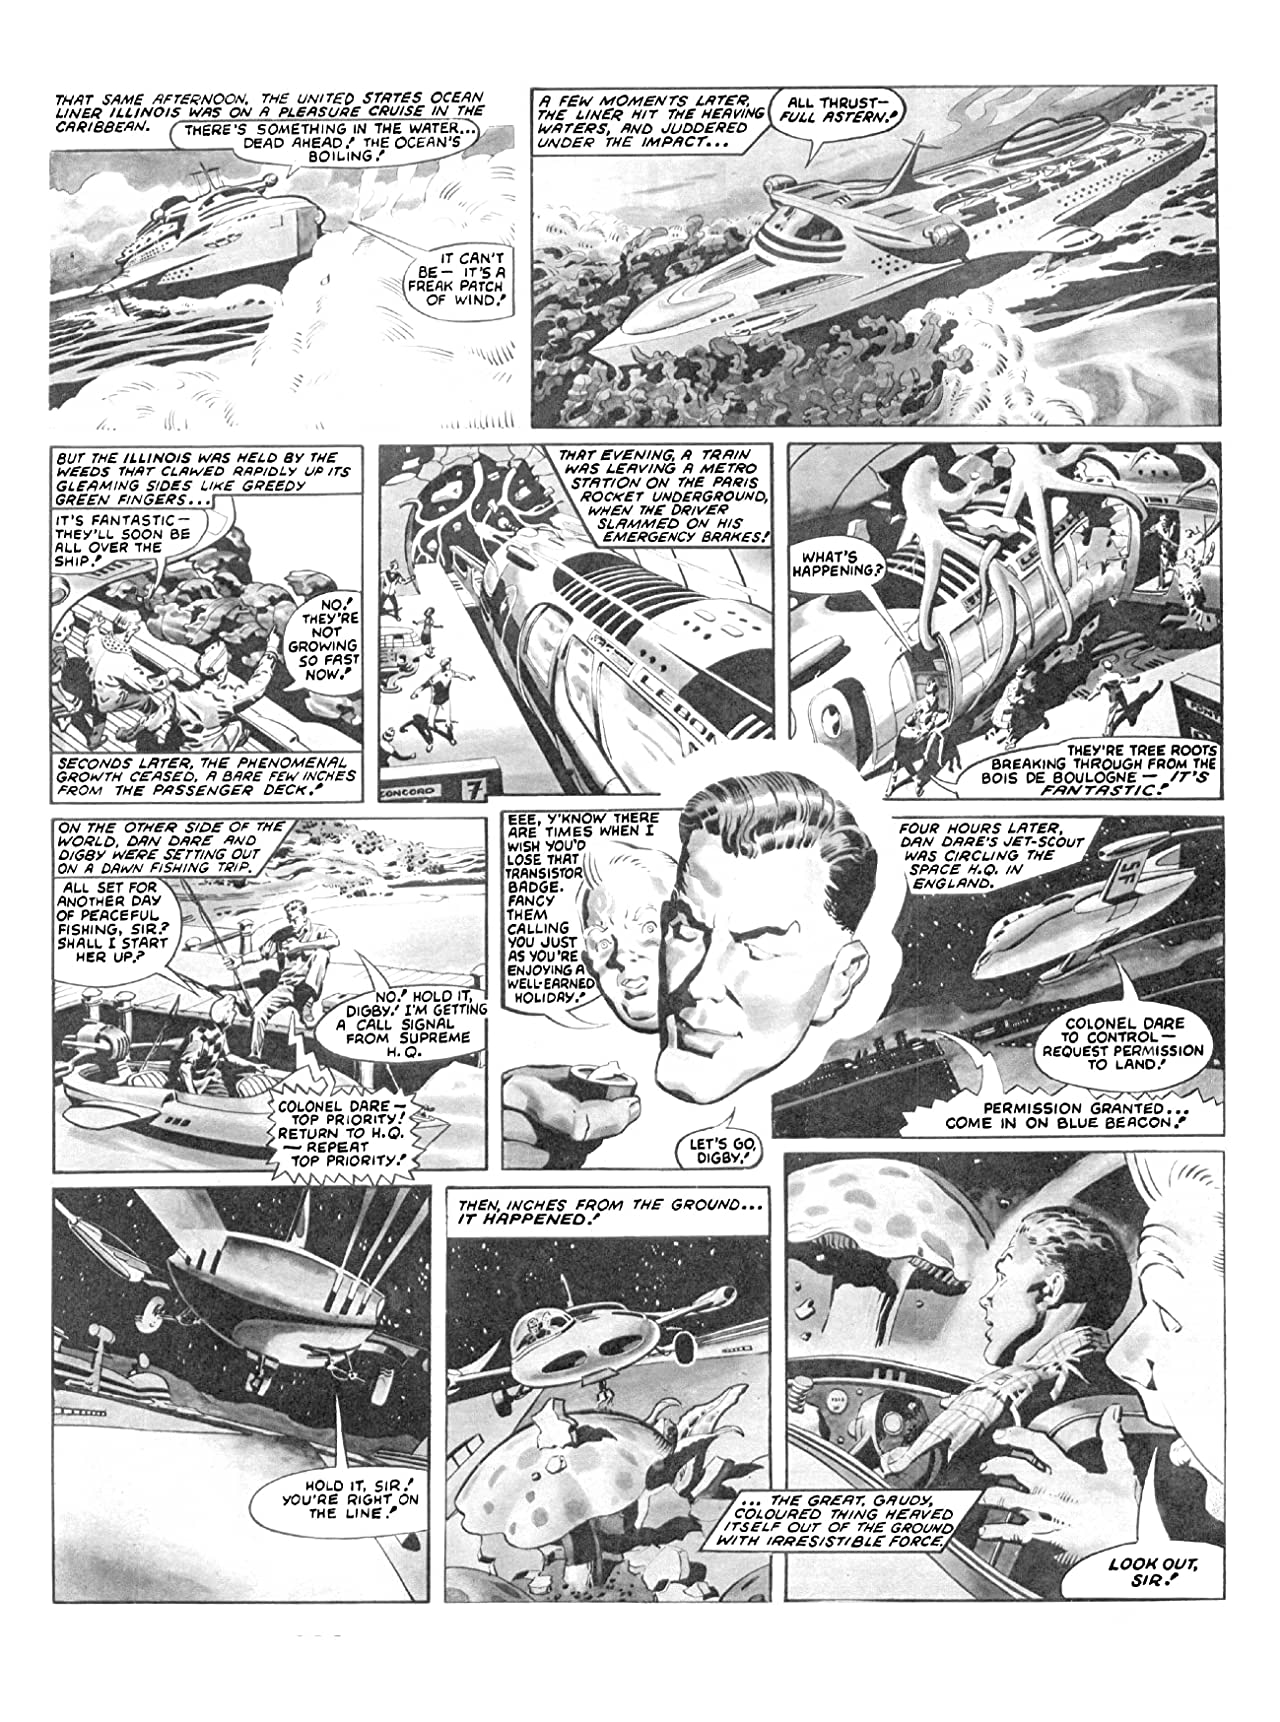 Dan Dare: The Evil One